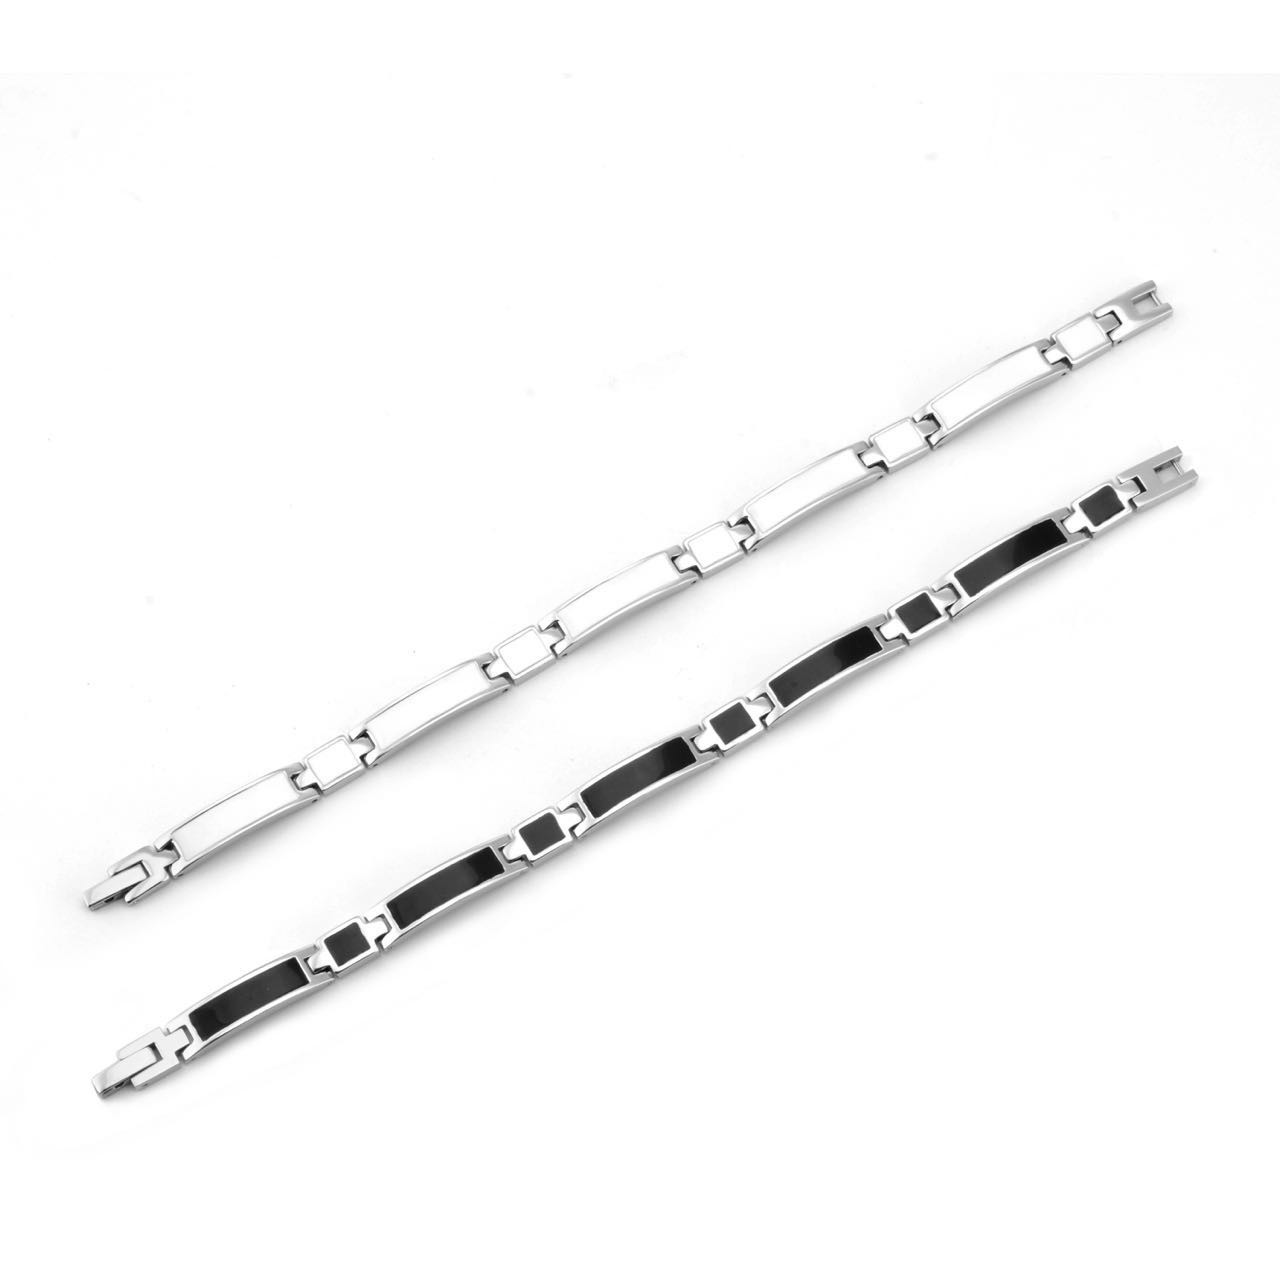 Health Care Germanium 316L Stainless Steel Bracelet Manufacturers, Health Care Germanium 316L Stainless Steel Bracelet Factory, Supply Health Care Germanium 316L Stainless Steel Bracelet